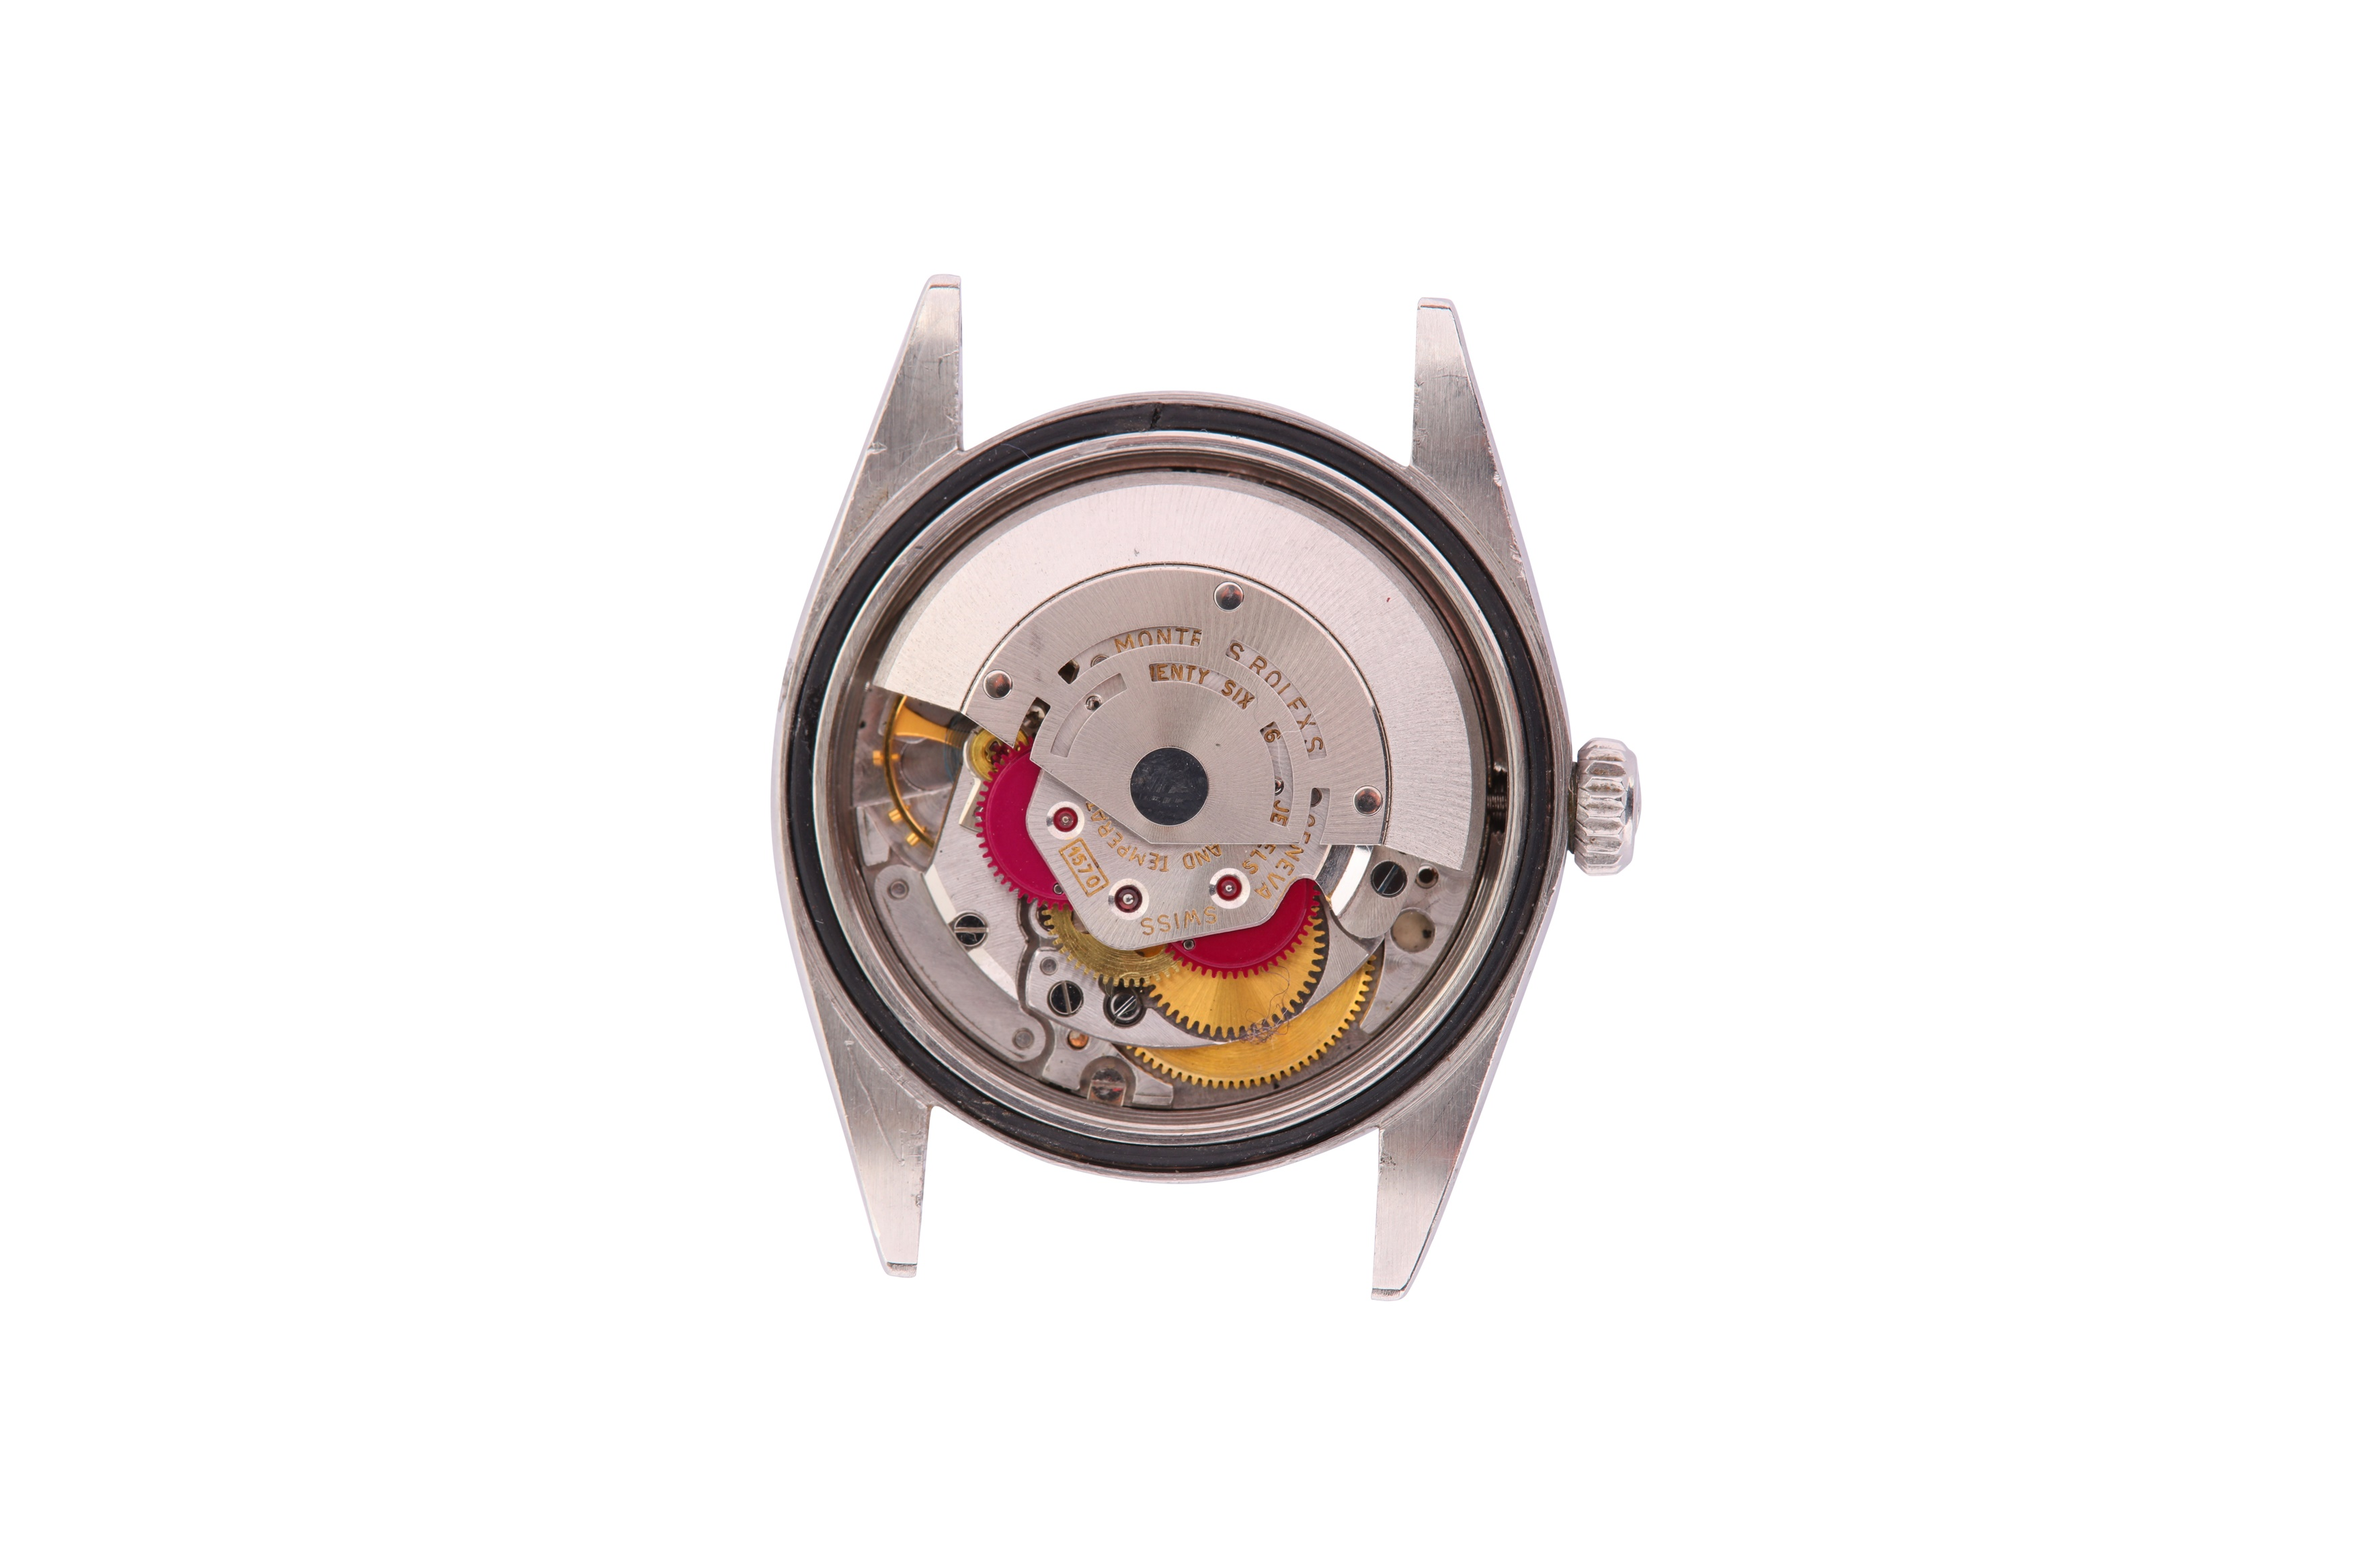 A RARE AND ATTRACTIVE MEN'S ROLEX STAINLESS STEEL AUTOMATIC WRISTWATCH - Image 5 of 9